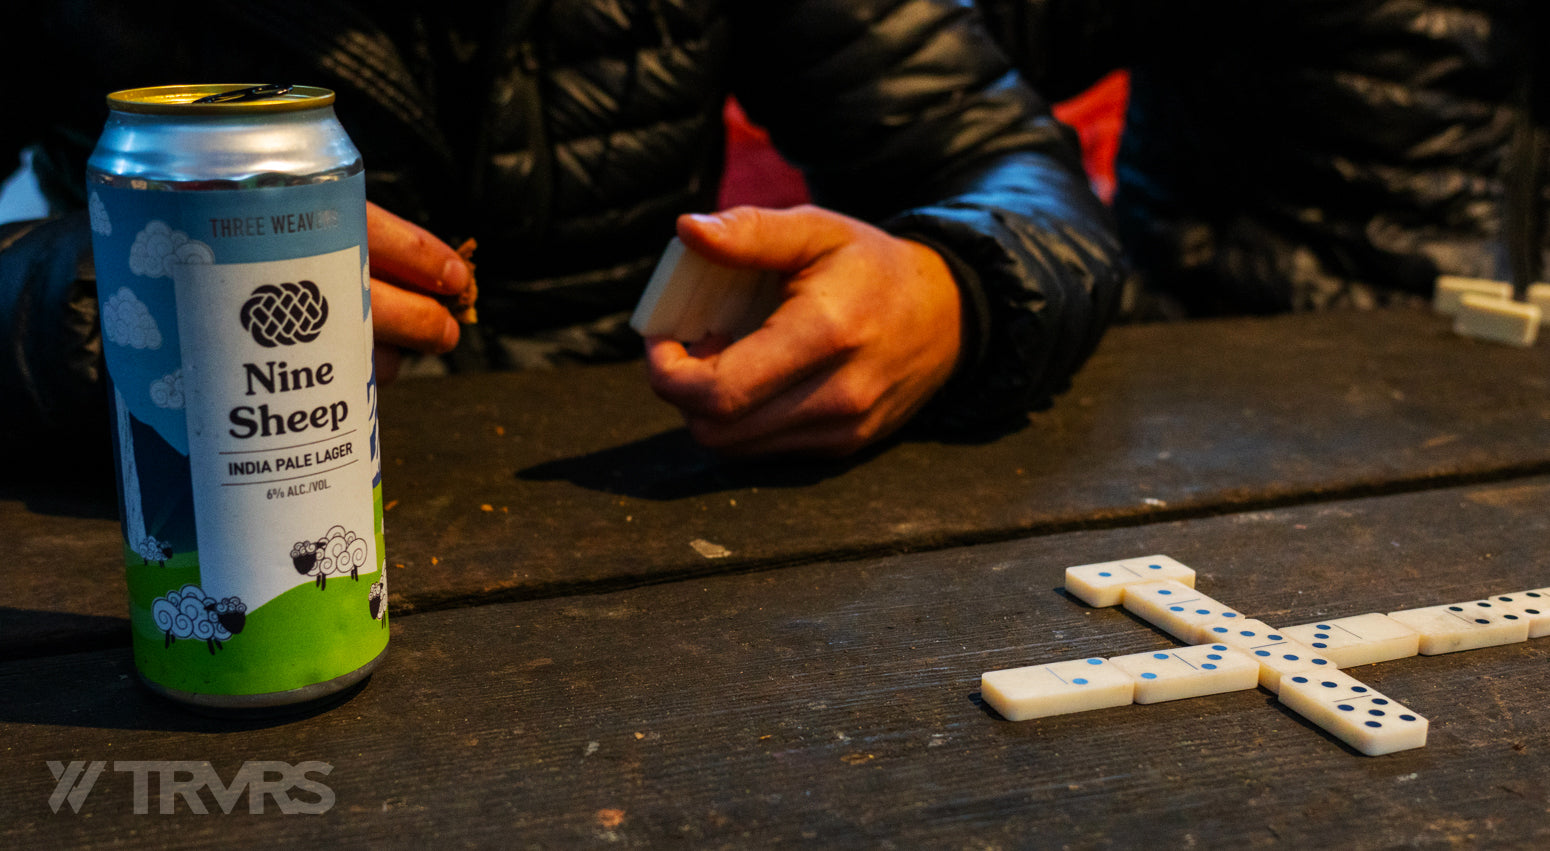 Dominoes and Beer -Sea To Sky | TRVRS Outdoors Big Sur, Central California, Pacific Coast, Los Padres National Forest, Santa Lucia Mountains, Hiking, Trail Running, Mountaineering